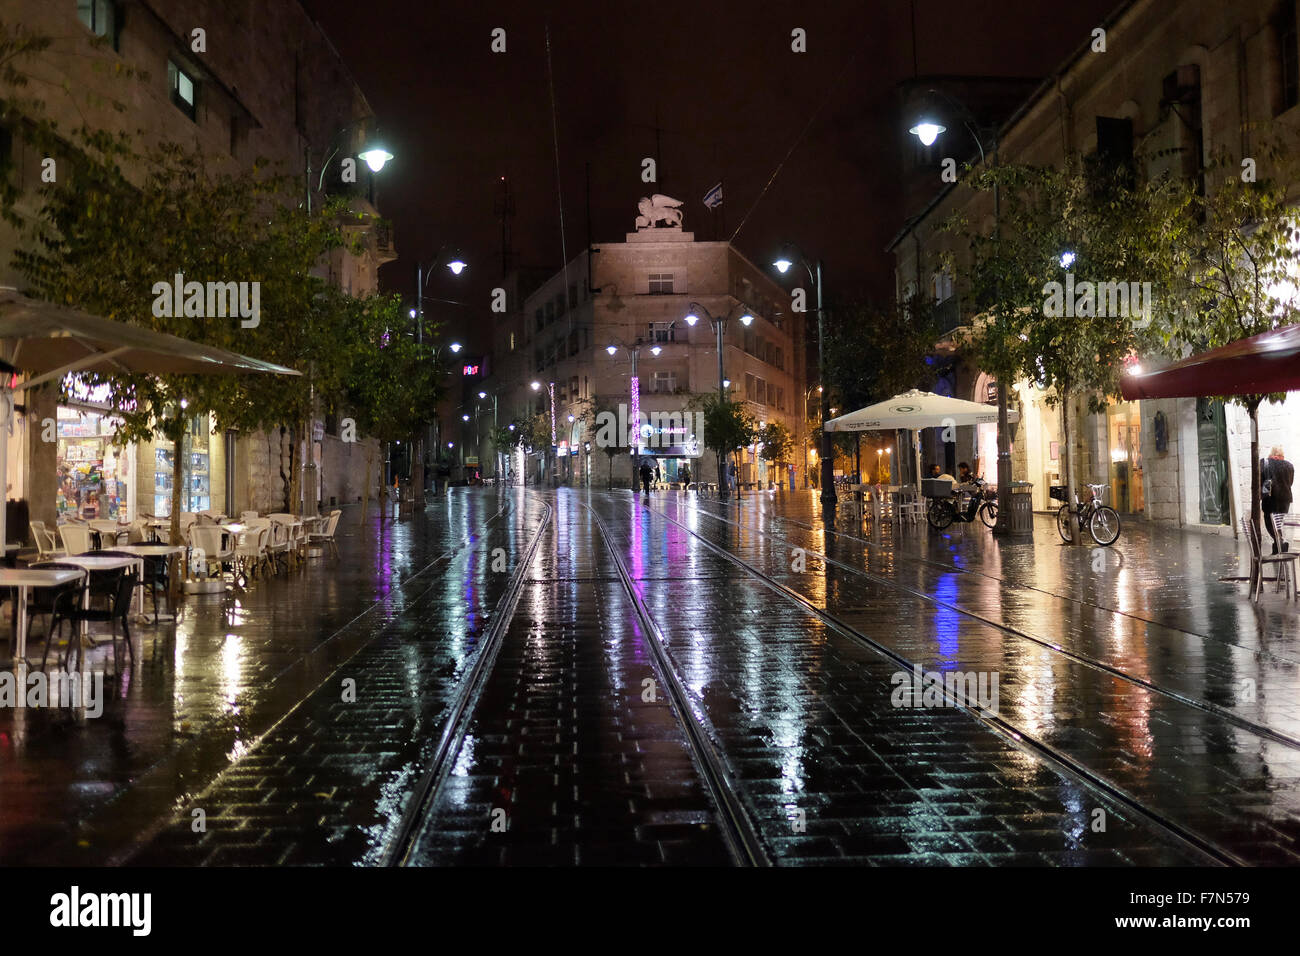 A rainy night in Jaffa road the longest and oldest major street in downtown West Jerusalem Israel - Stock Image